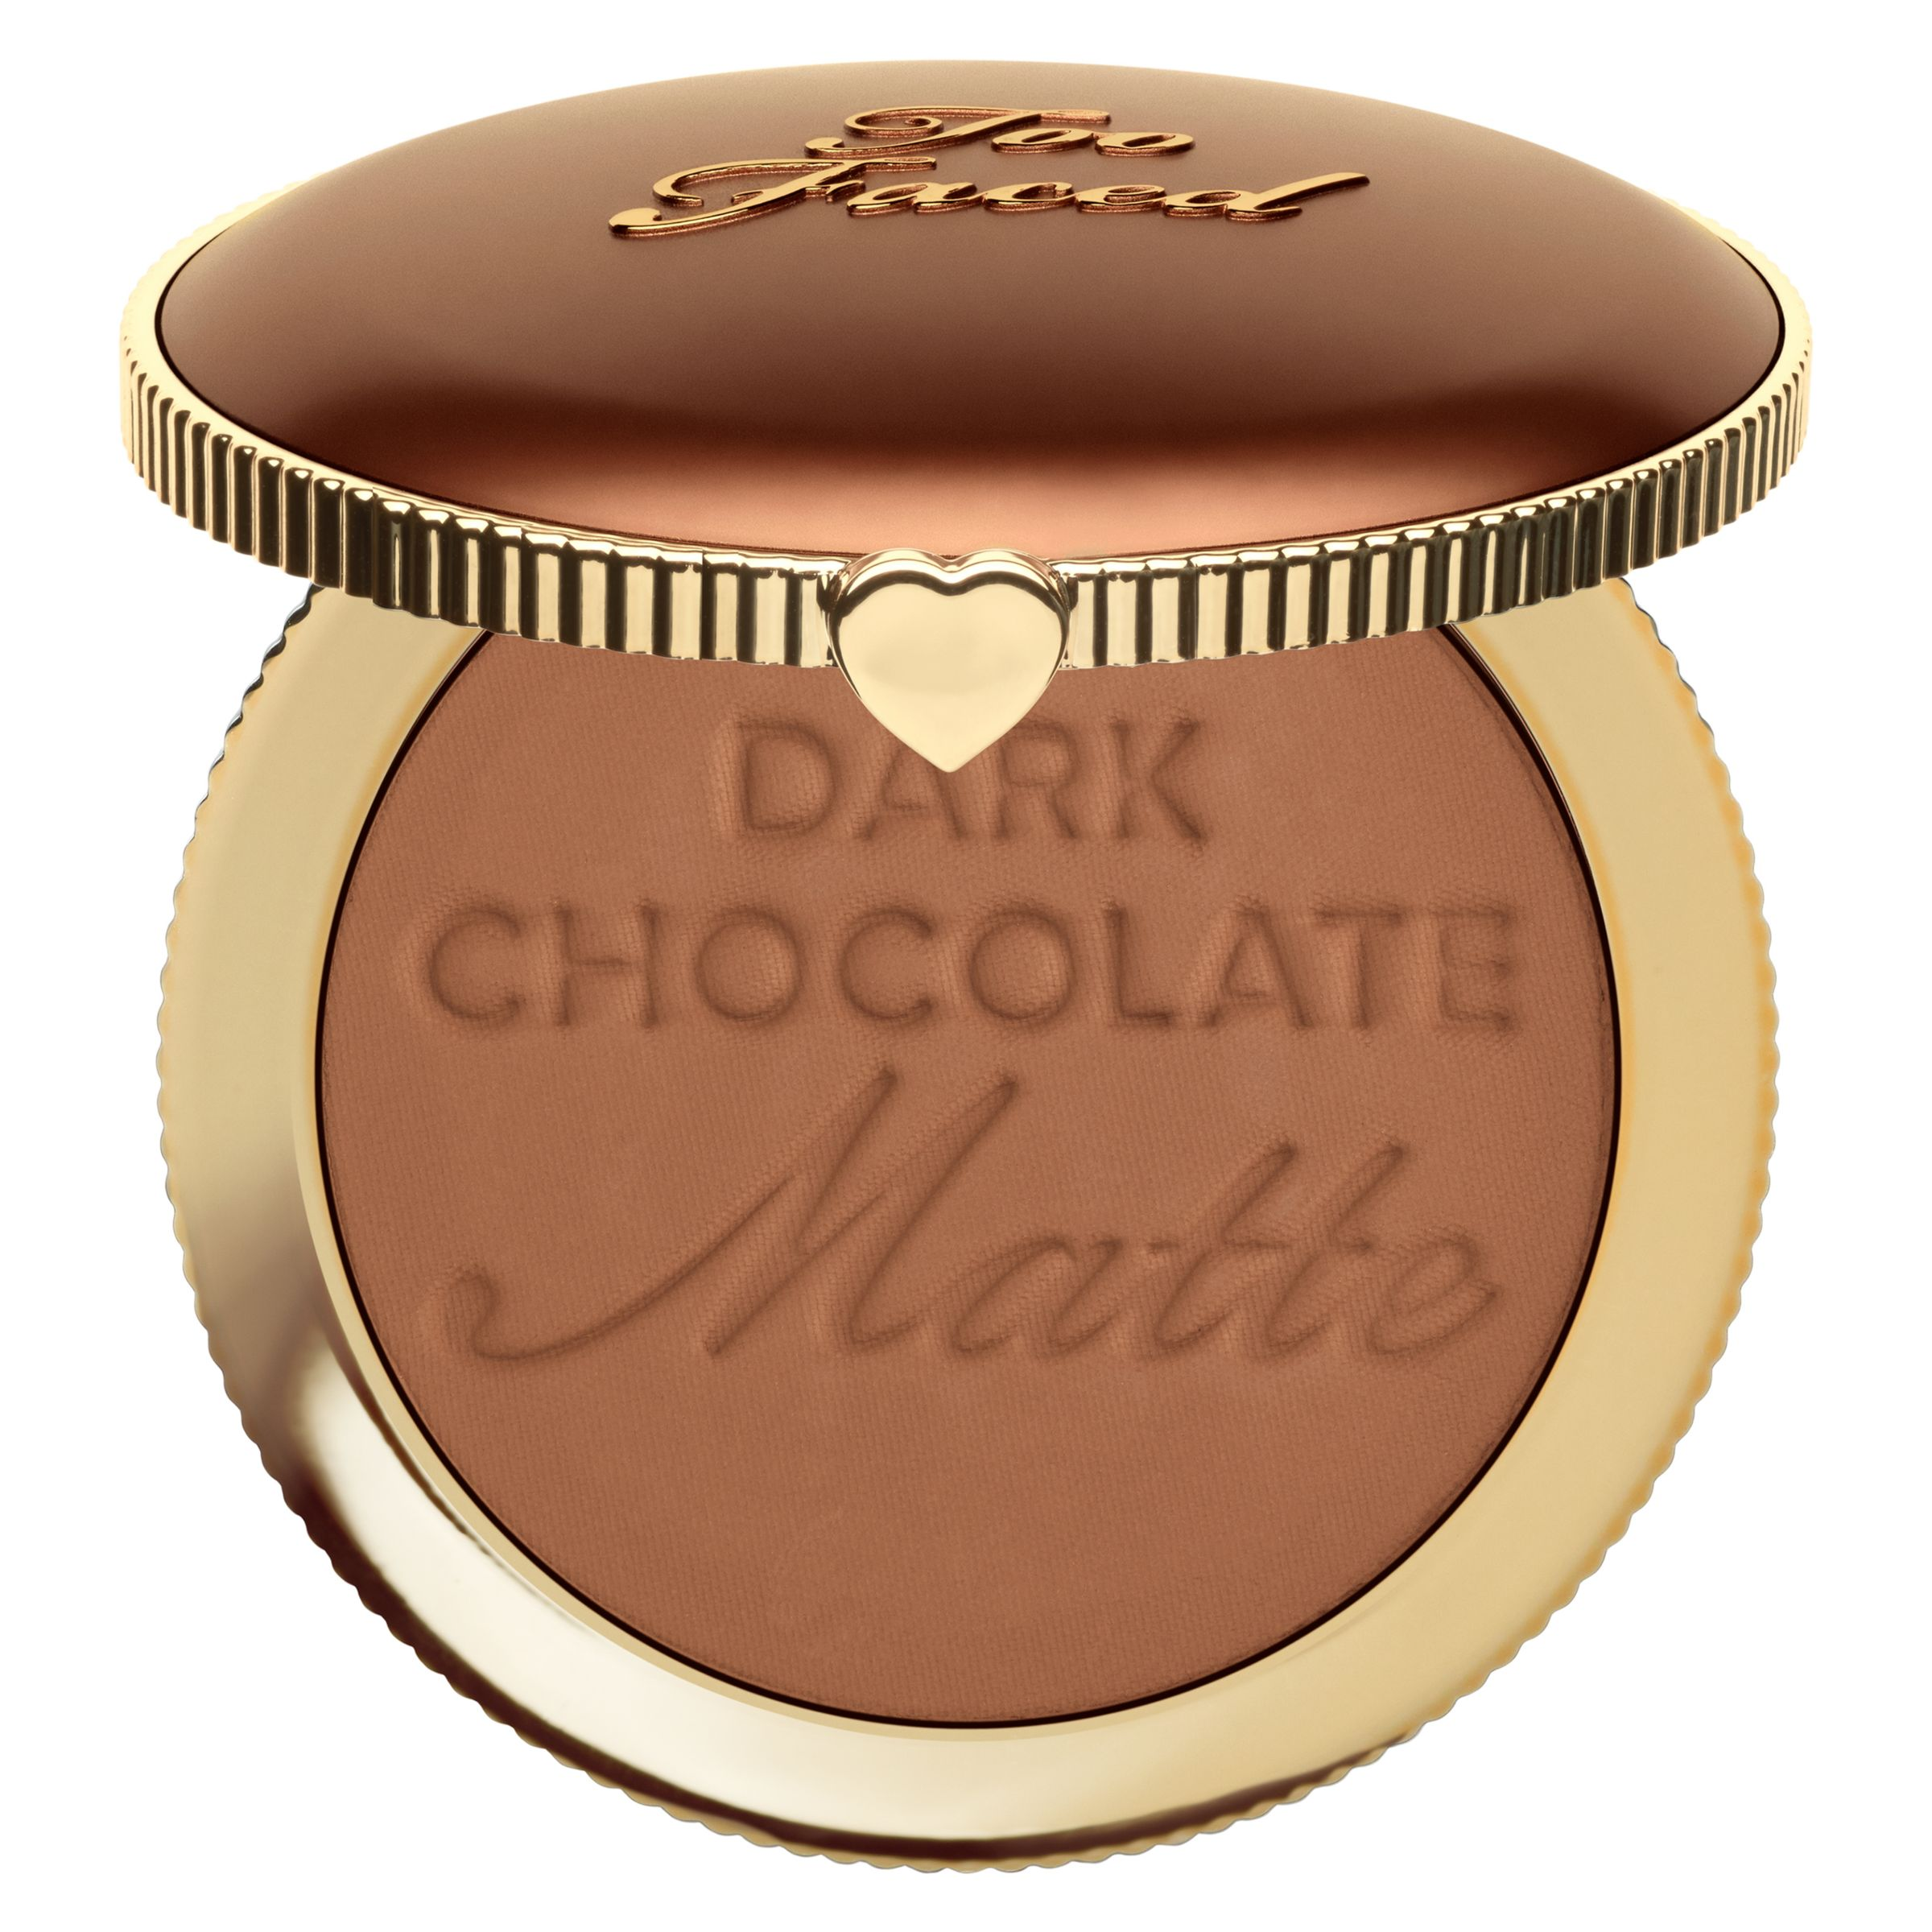 Too Faced Too Faced Dark Chocolate Soleil Bronzer